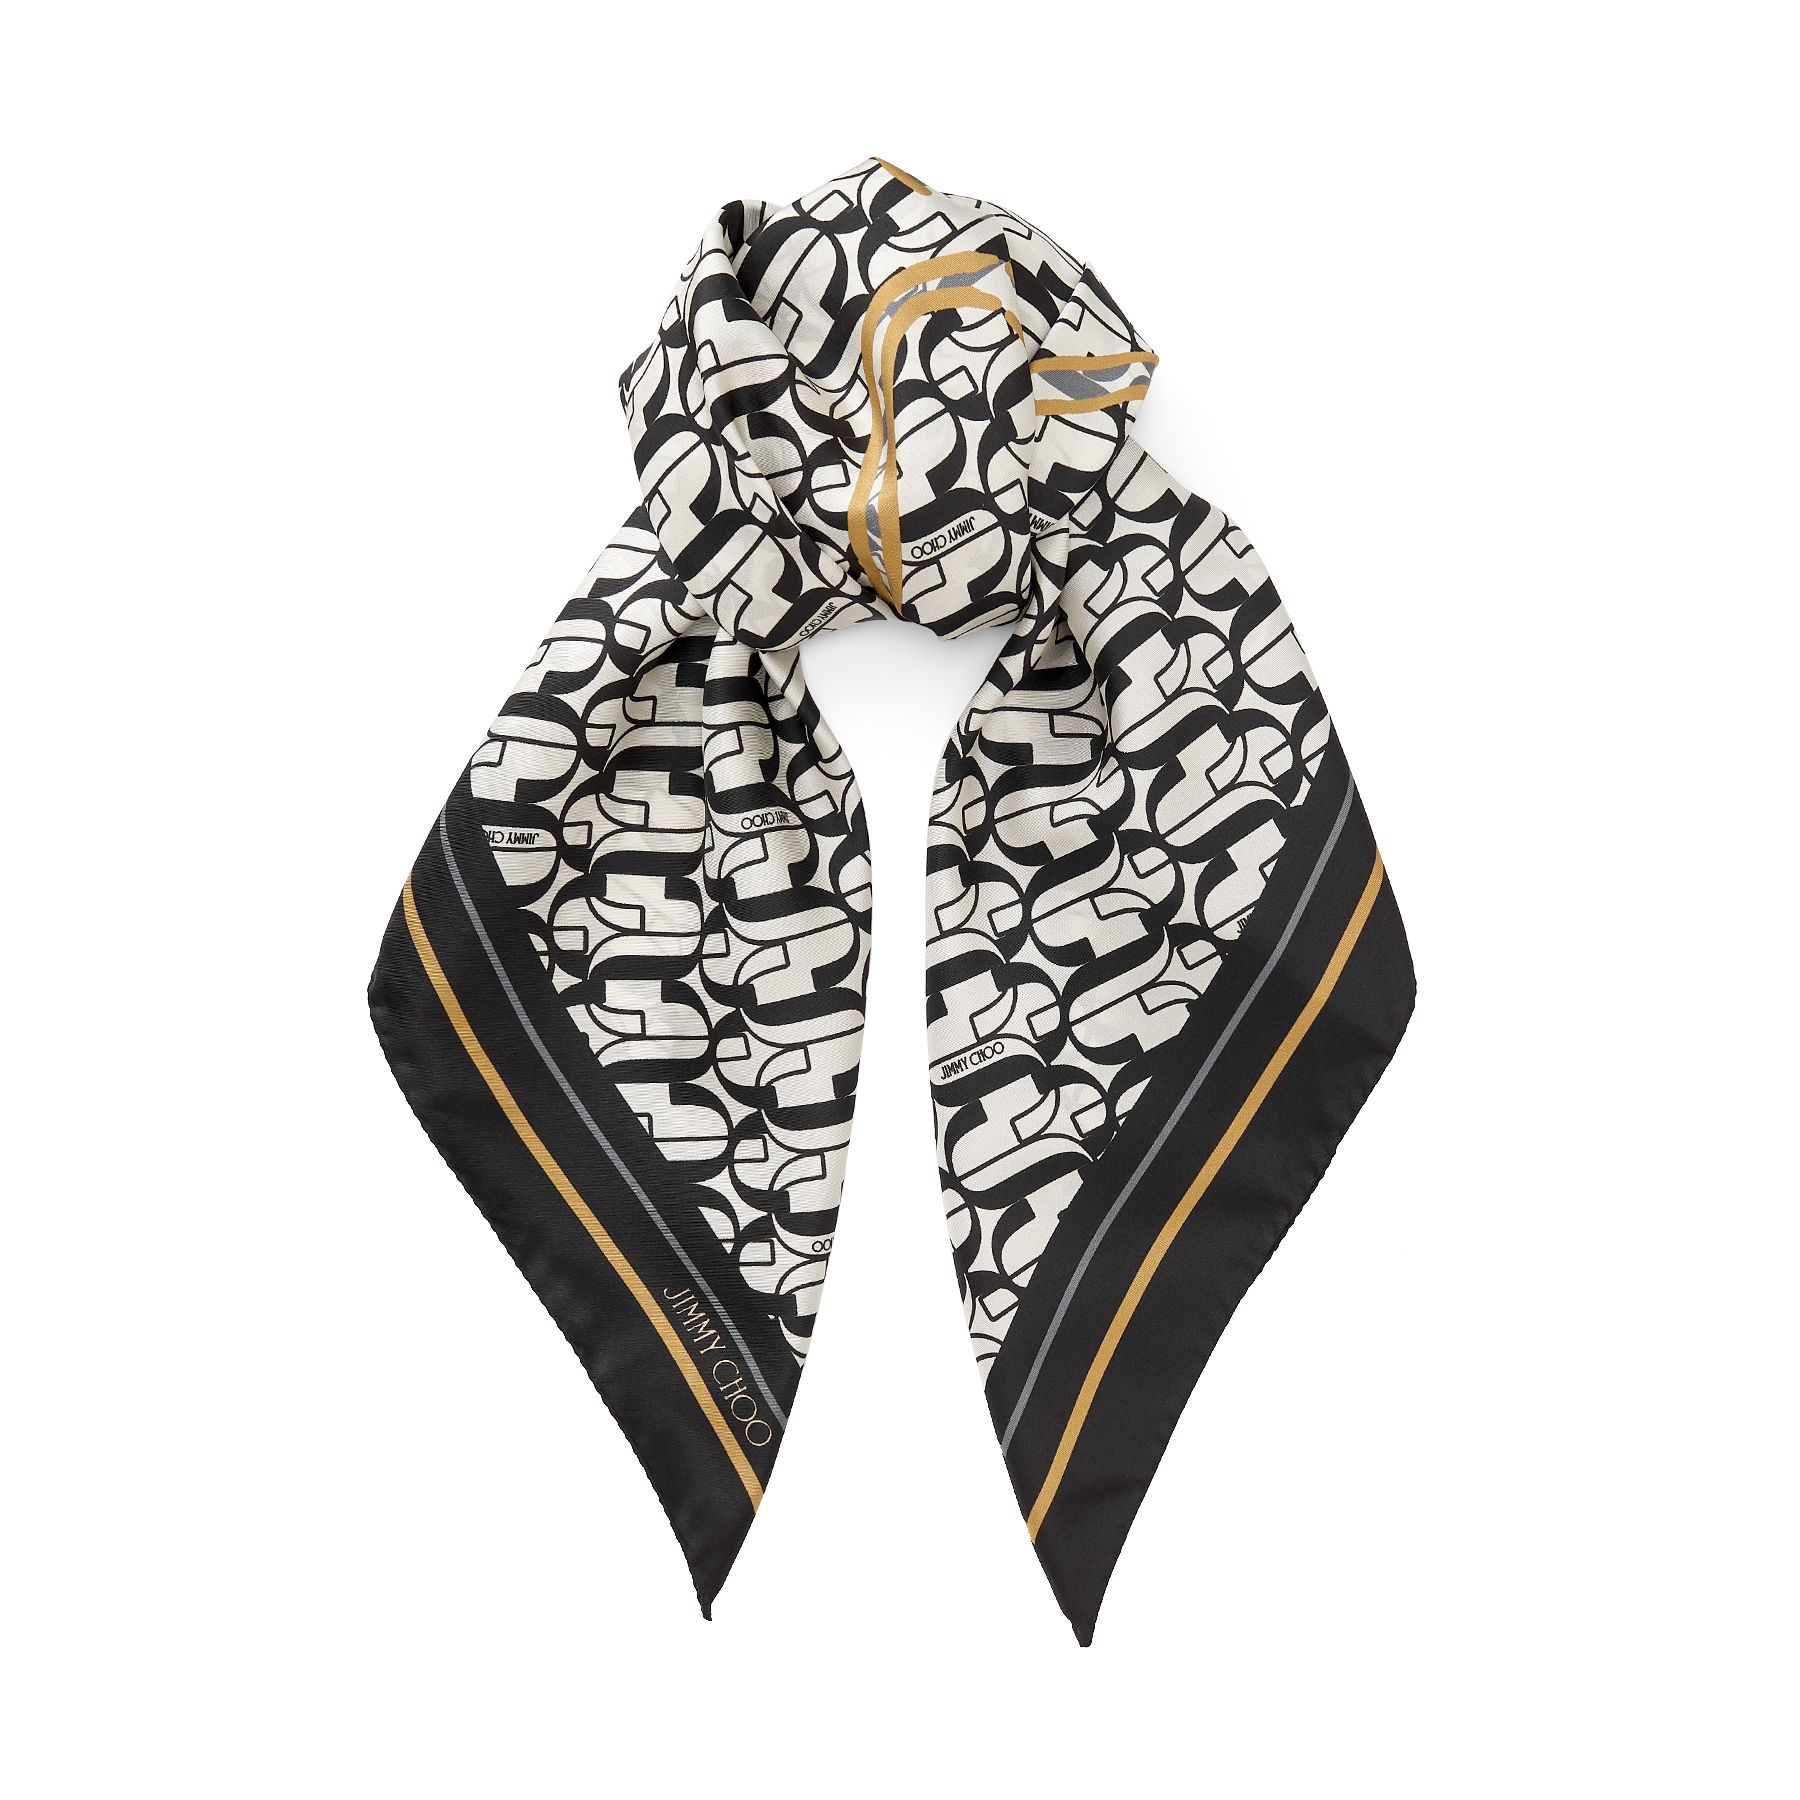 In pure silk, our latte LYNA printed twill foulard is ideal for elegantly accessorising endless looks. Crafted in Italy, it\\\'s made from 100 per cent soft silk and printed with our JC logo and iconic lance shoe.